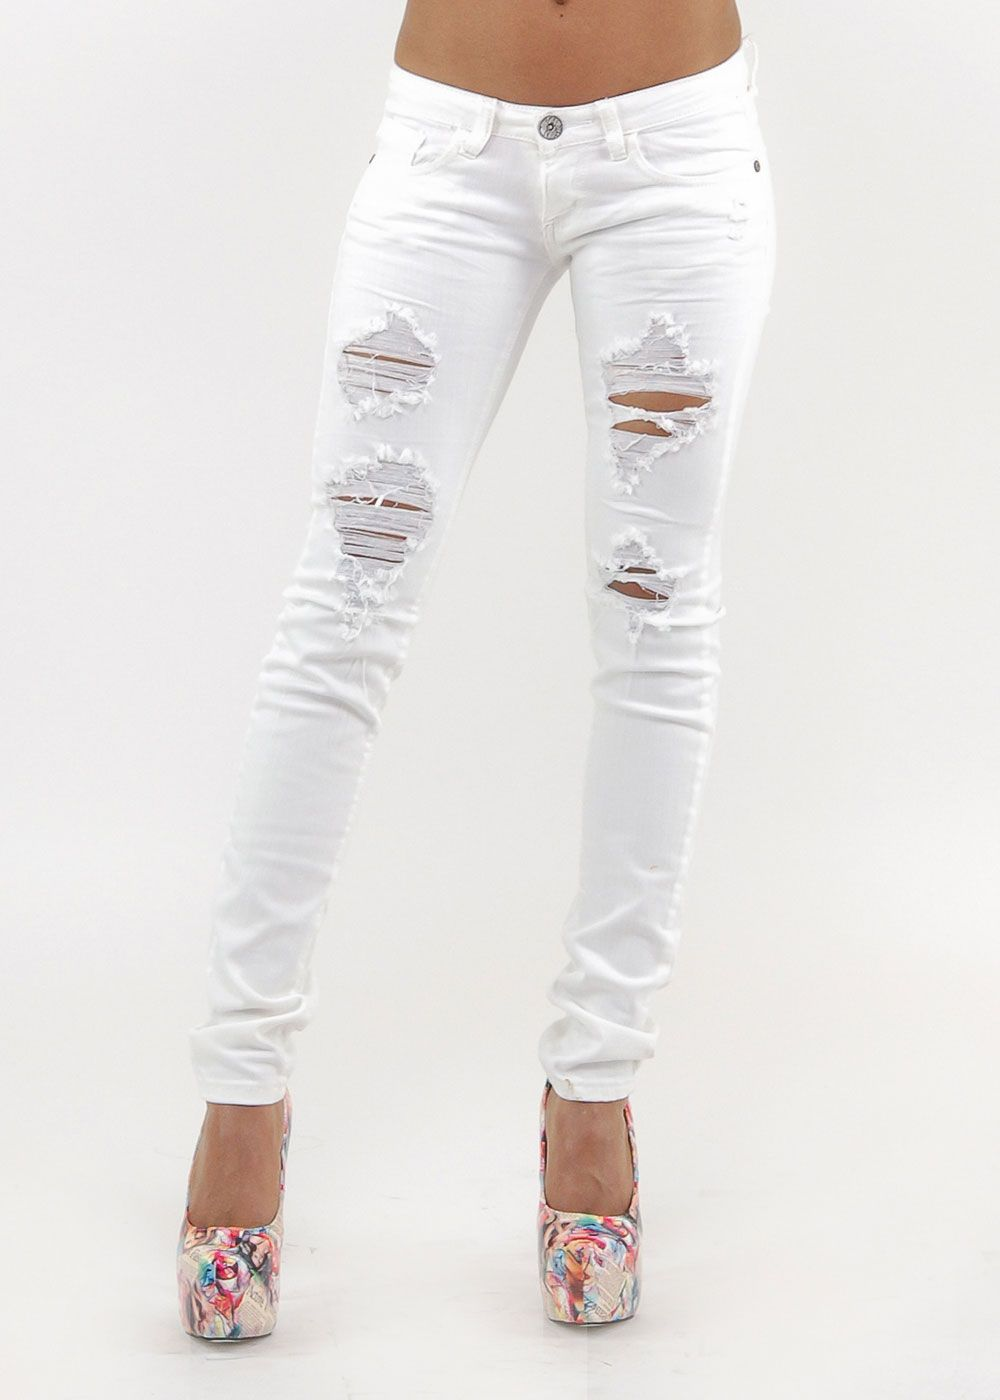 Ripped Jeans for Women | Fashion Women Ripped Lace Jeans - China ...